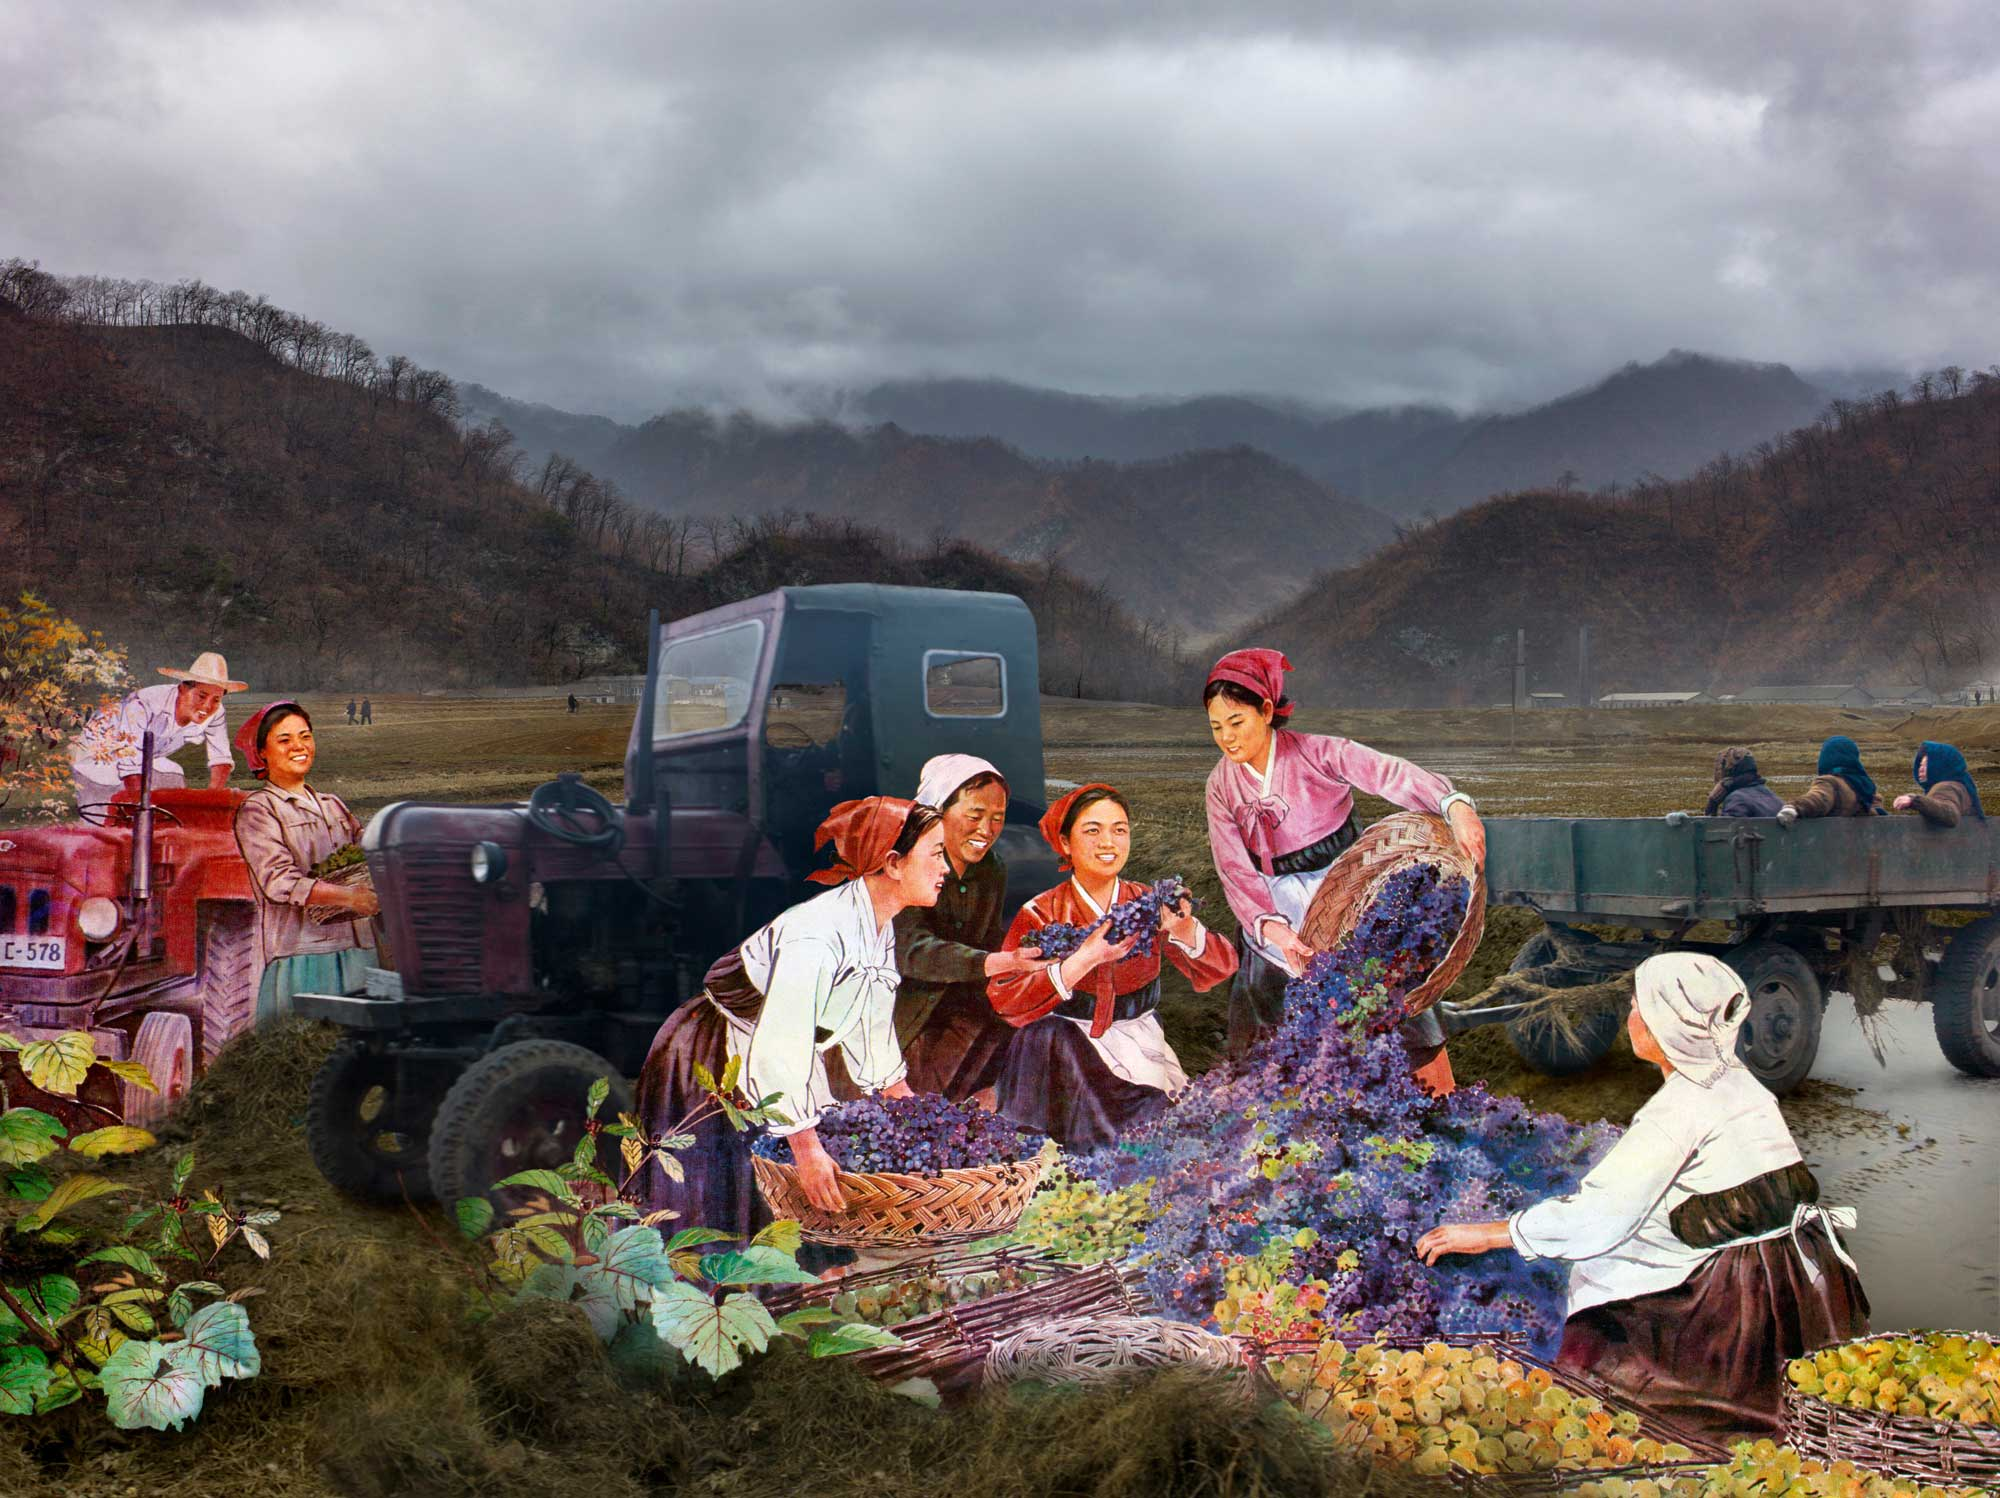 Harvest Time. From series North Korea - A Life between Propaganda and Reality.